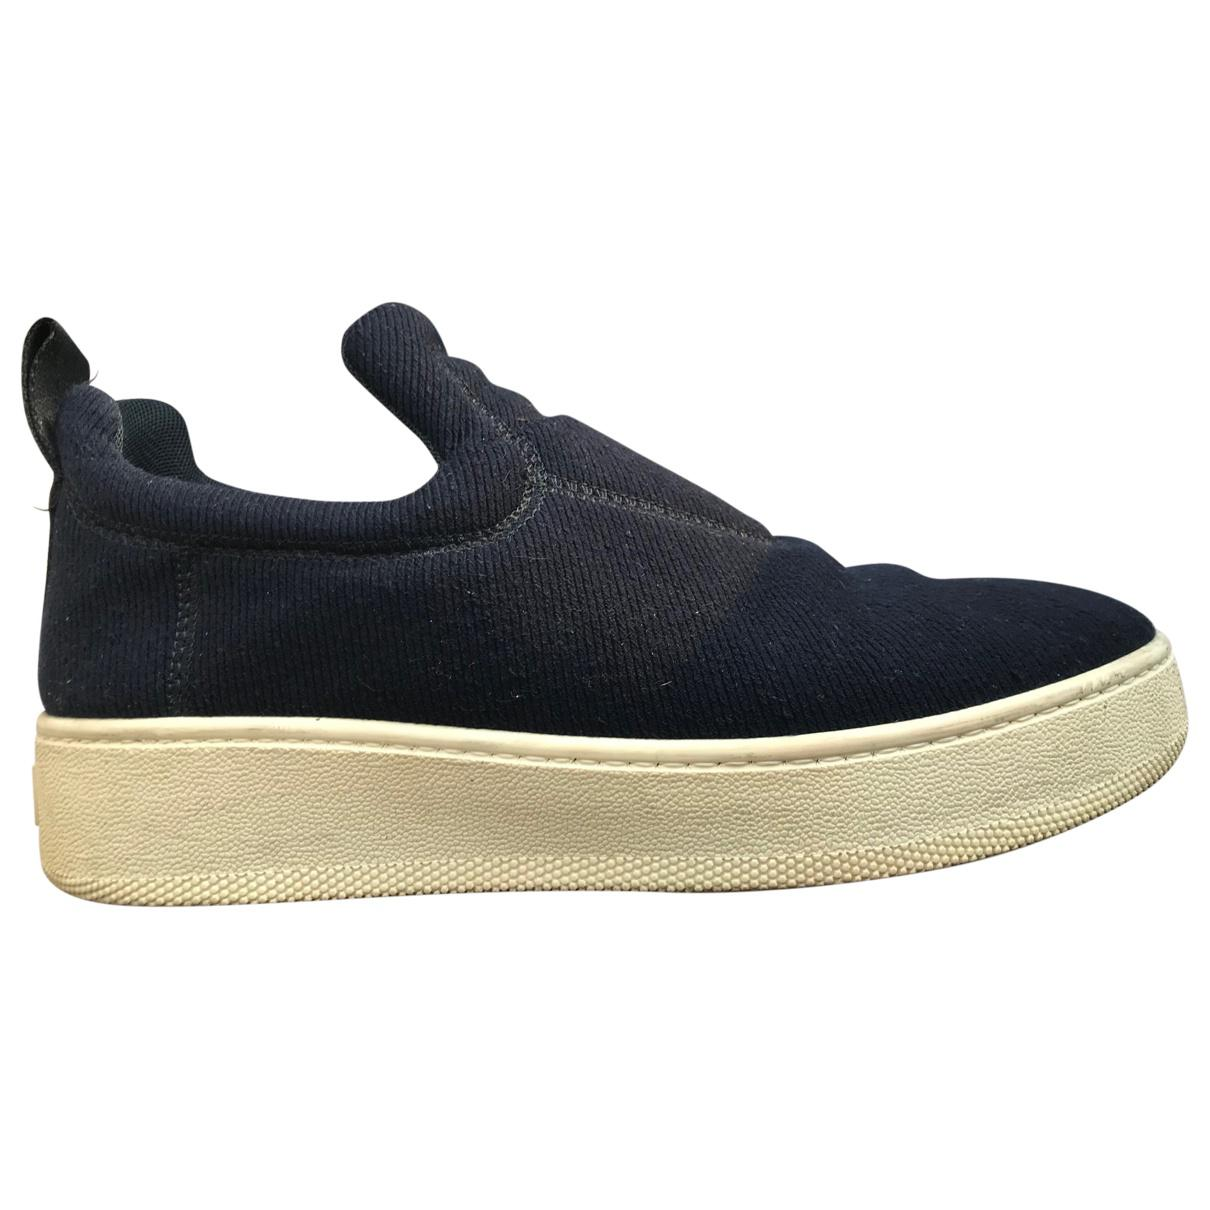 Pre-owned - Trainers Celine Shopping Online Cheap Online Free Shipping Largest Supplier dPmEn6Pe